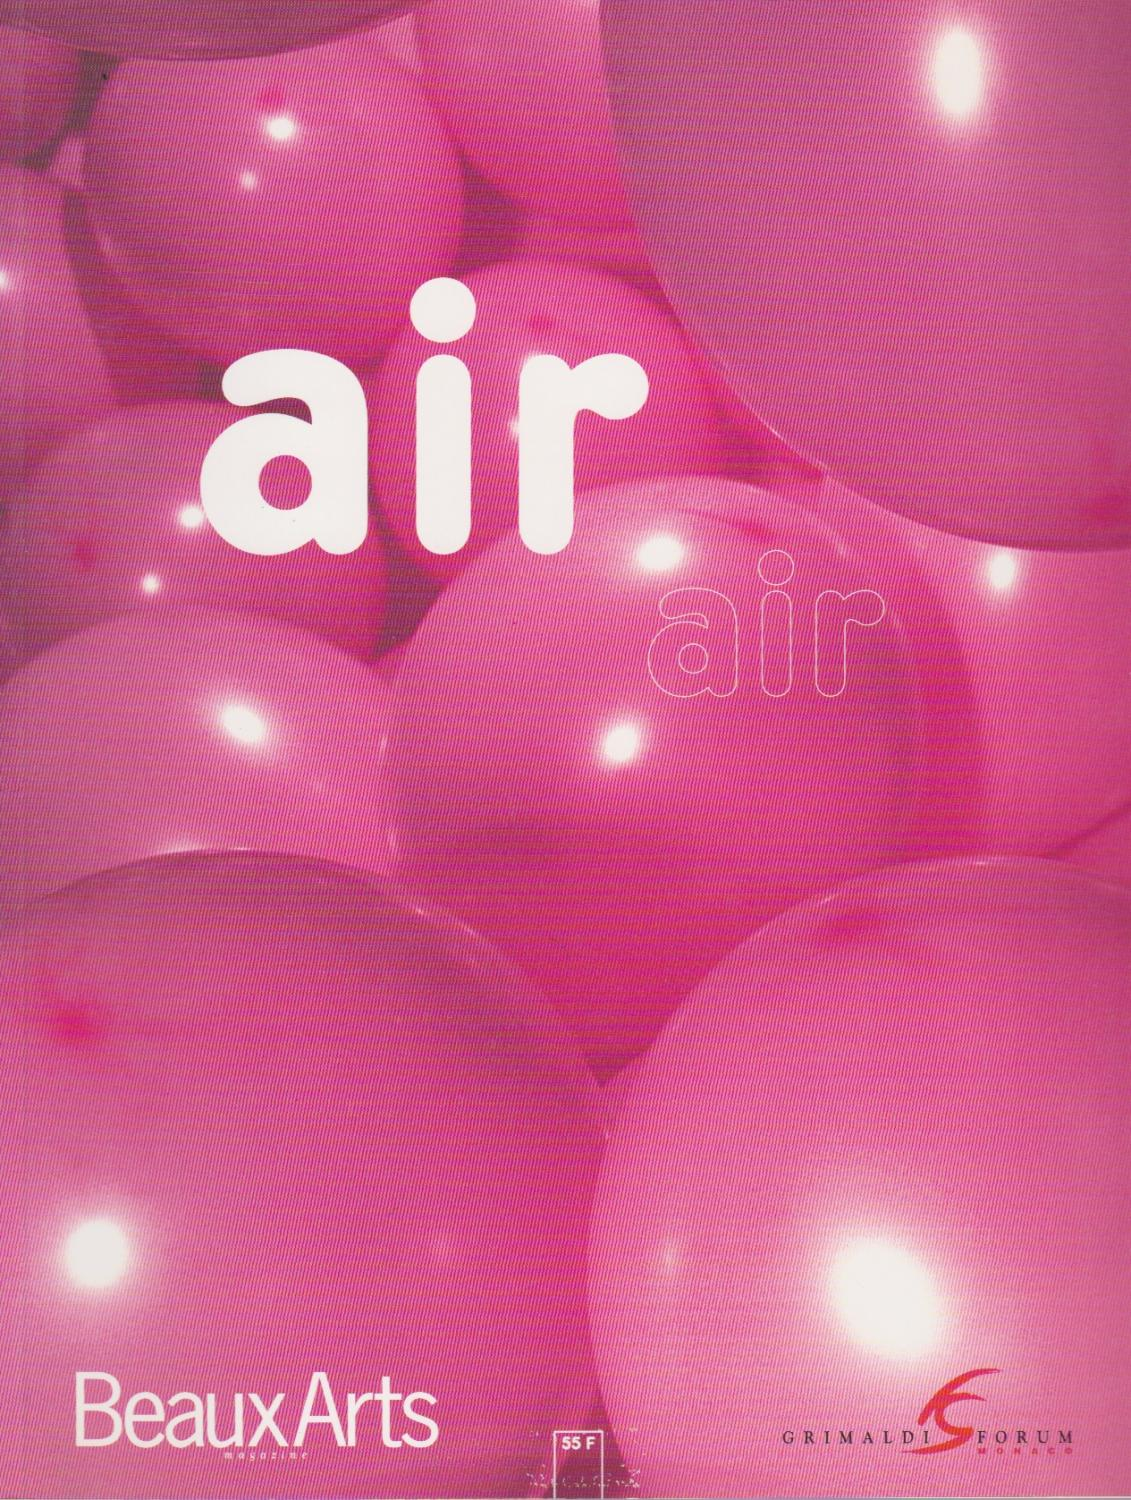 Air Air As New Softcover 49 pp